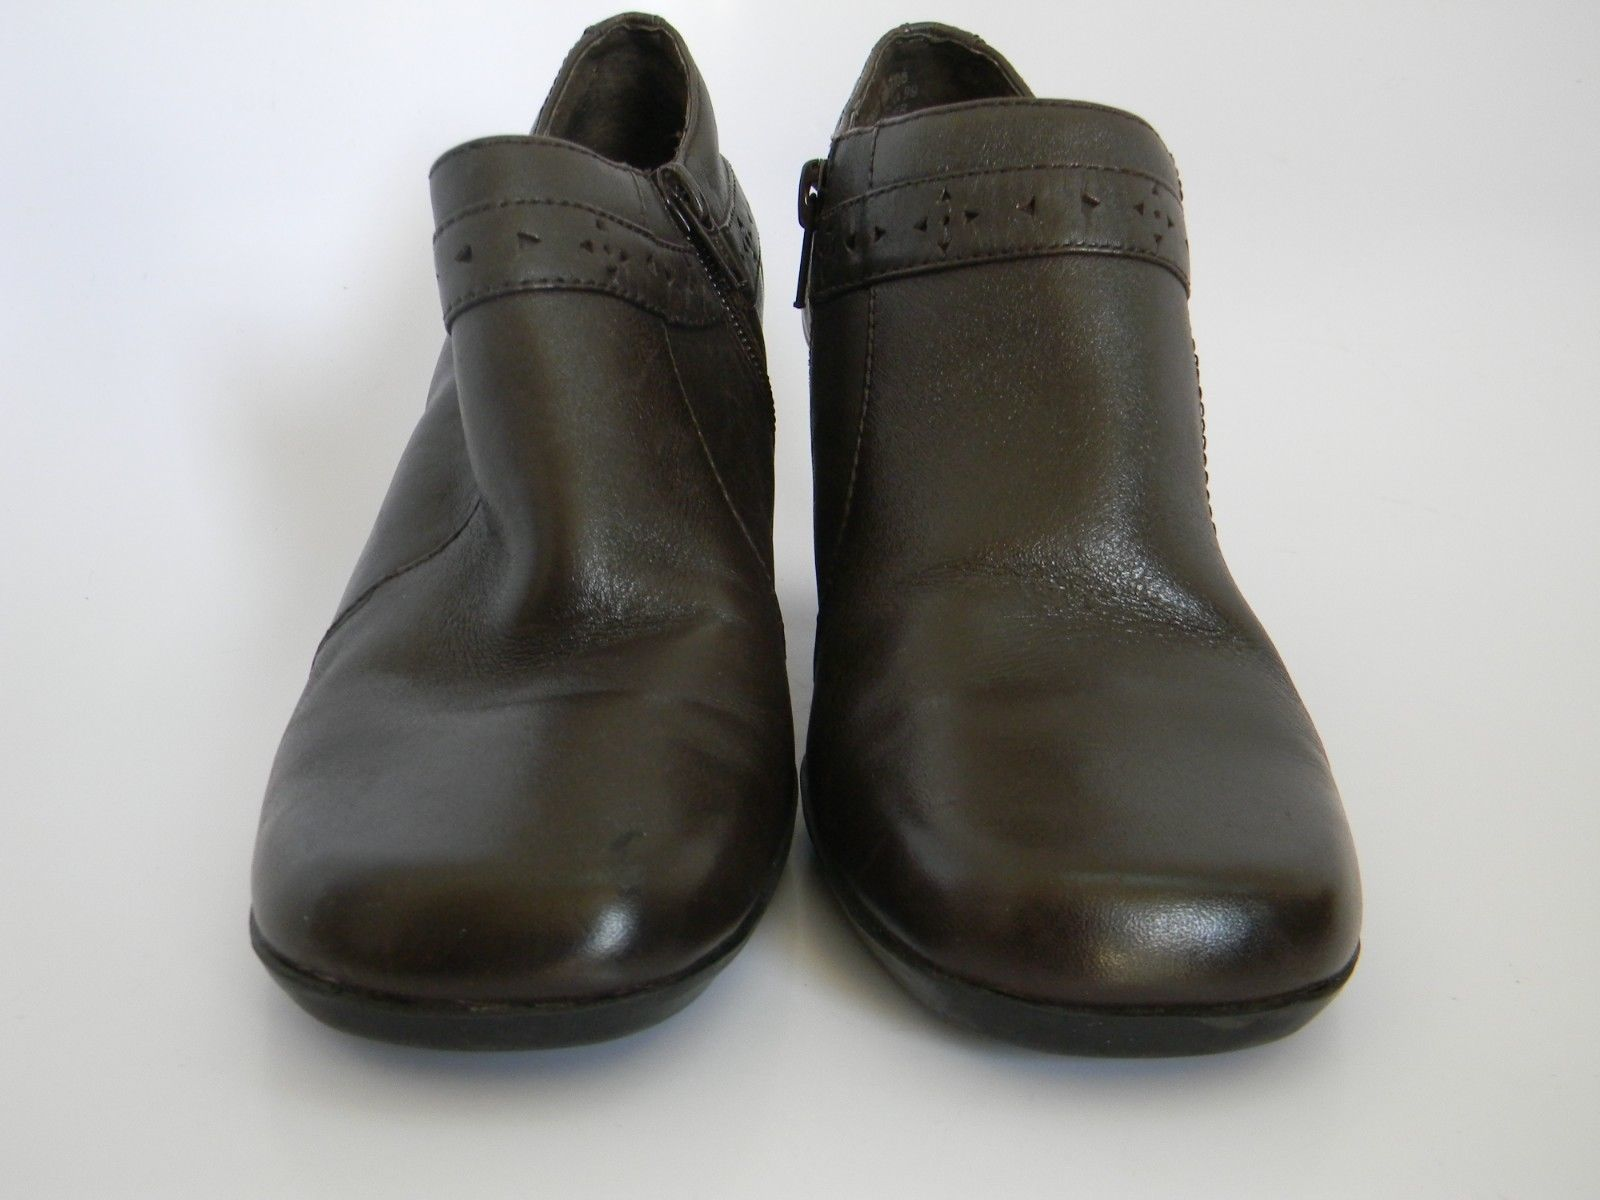 """Clarks Womens Brown Leather Upper 2.5"""" Ankle Boots Size 6M 70997"""